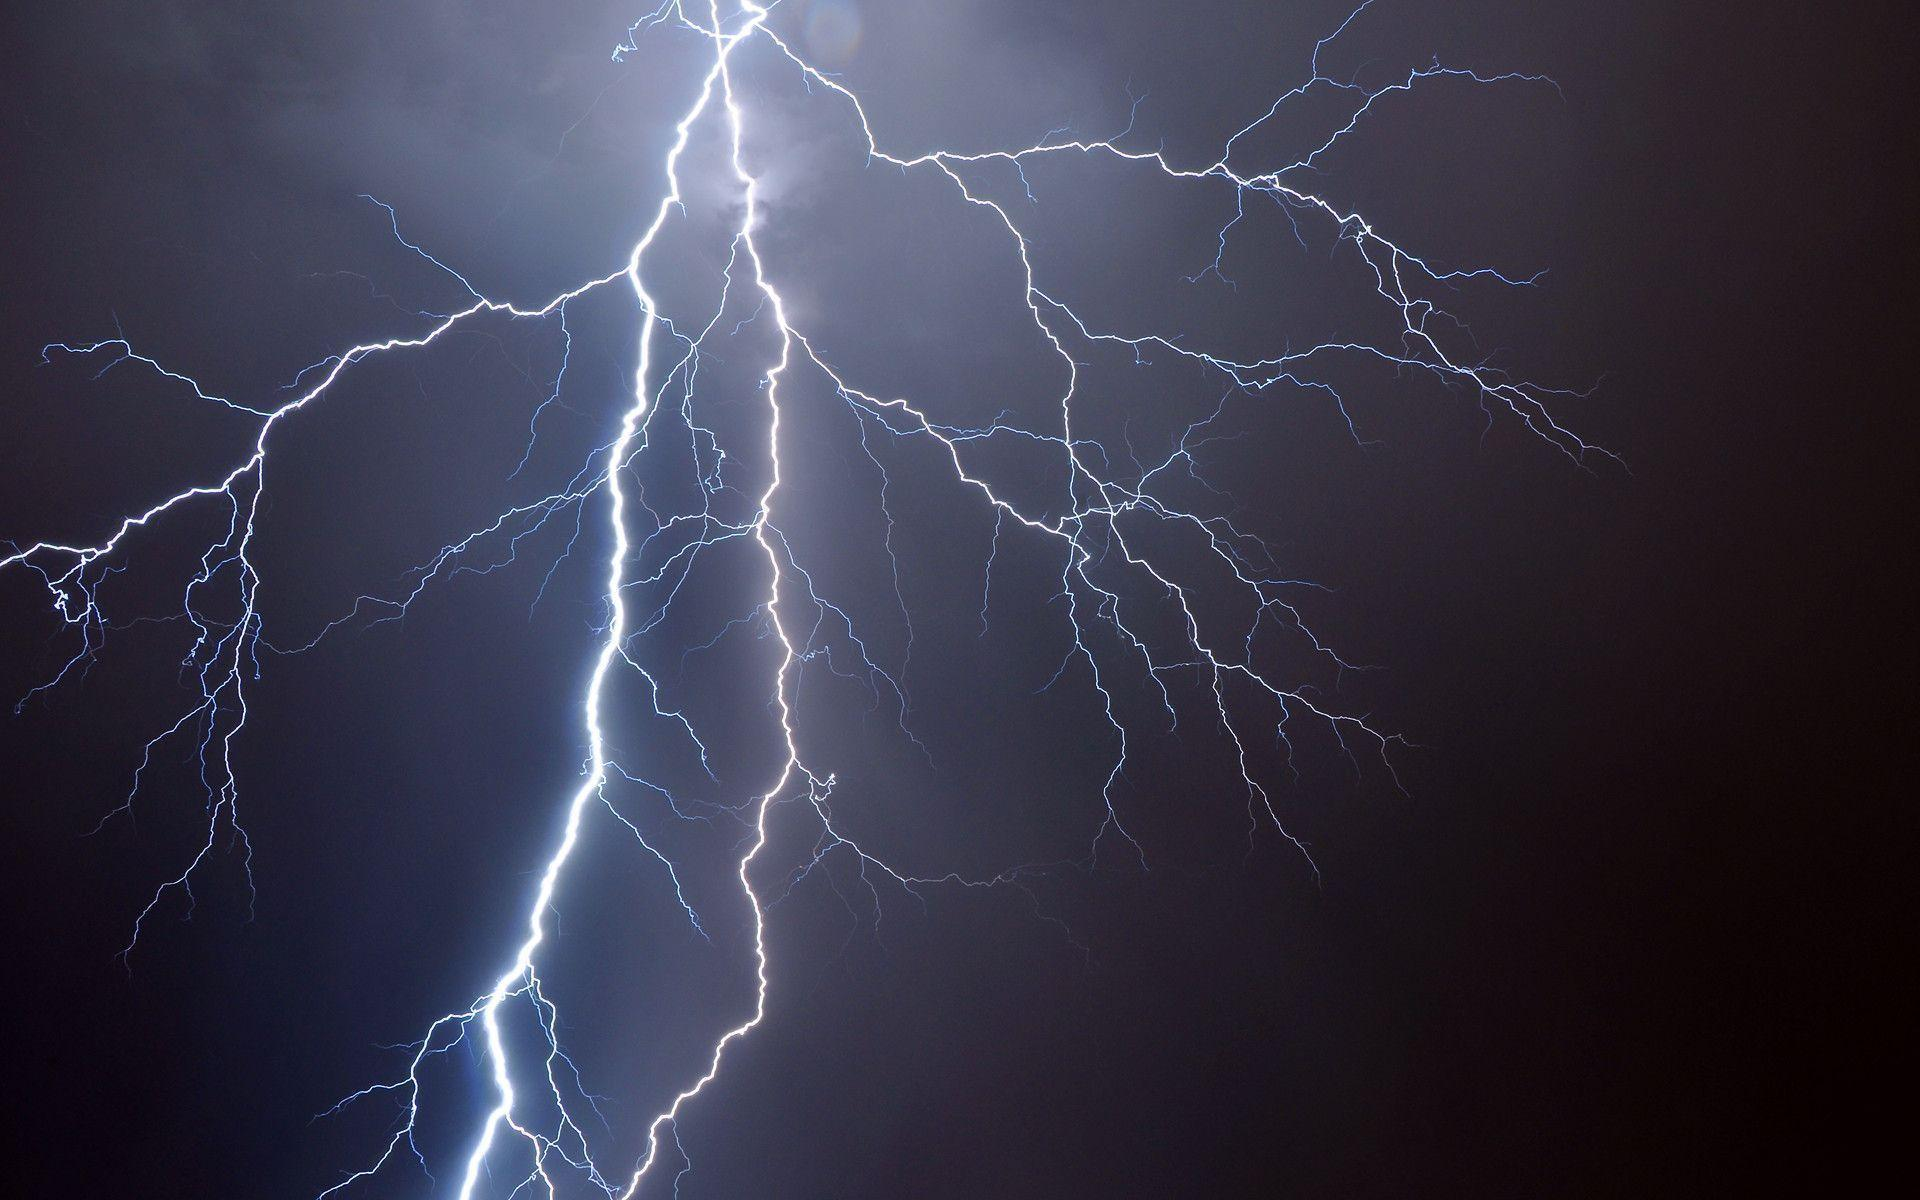 Hd Wallpapers Lightning Bolt 1280 X 1024 80 Kb Jpeg | HD ...